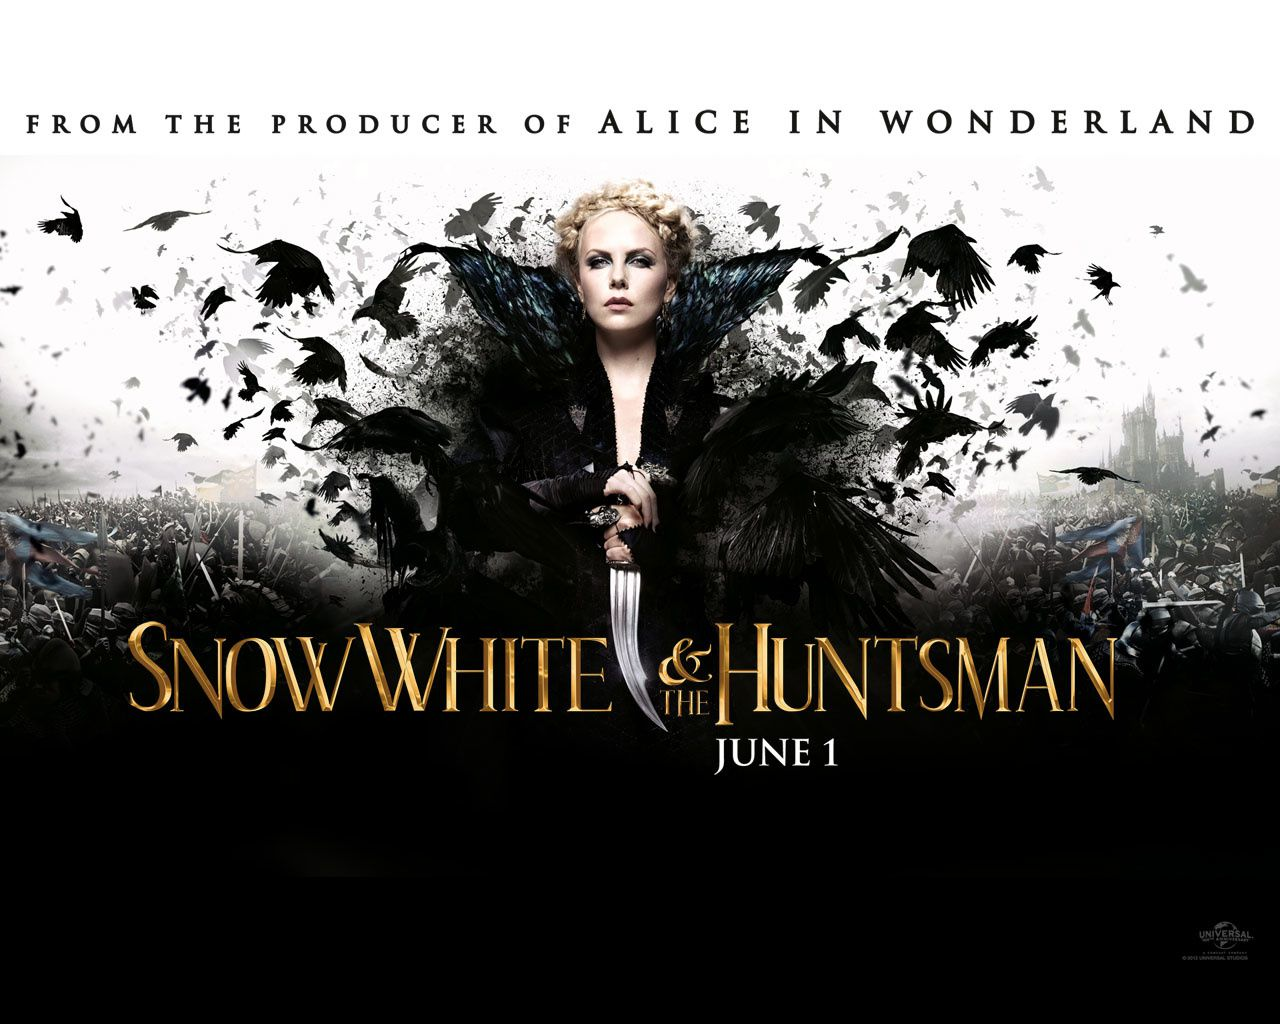 Charlize_Theron_in_Snow_White_and_the_Huntsman_Wallpaper_12.jpg